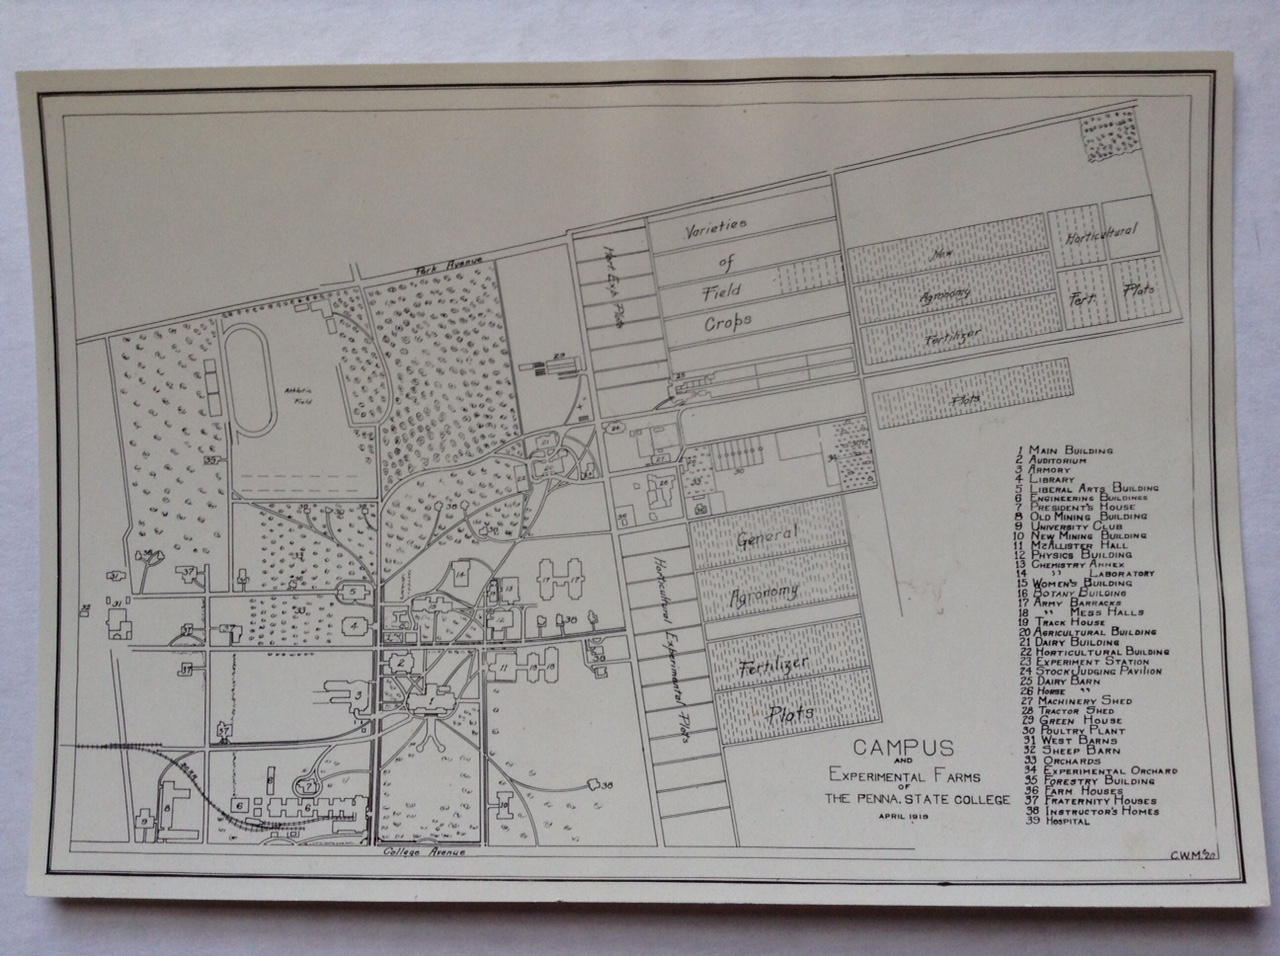 1918 PSU UP campus map